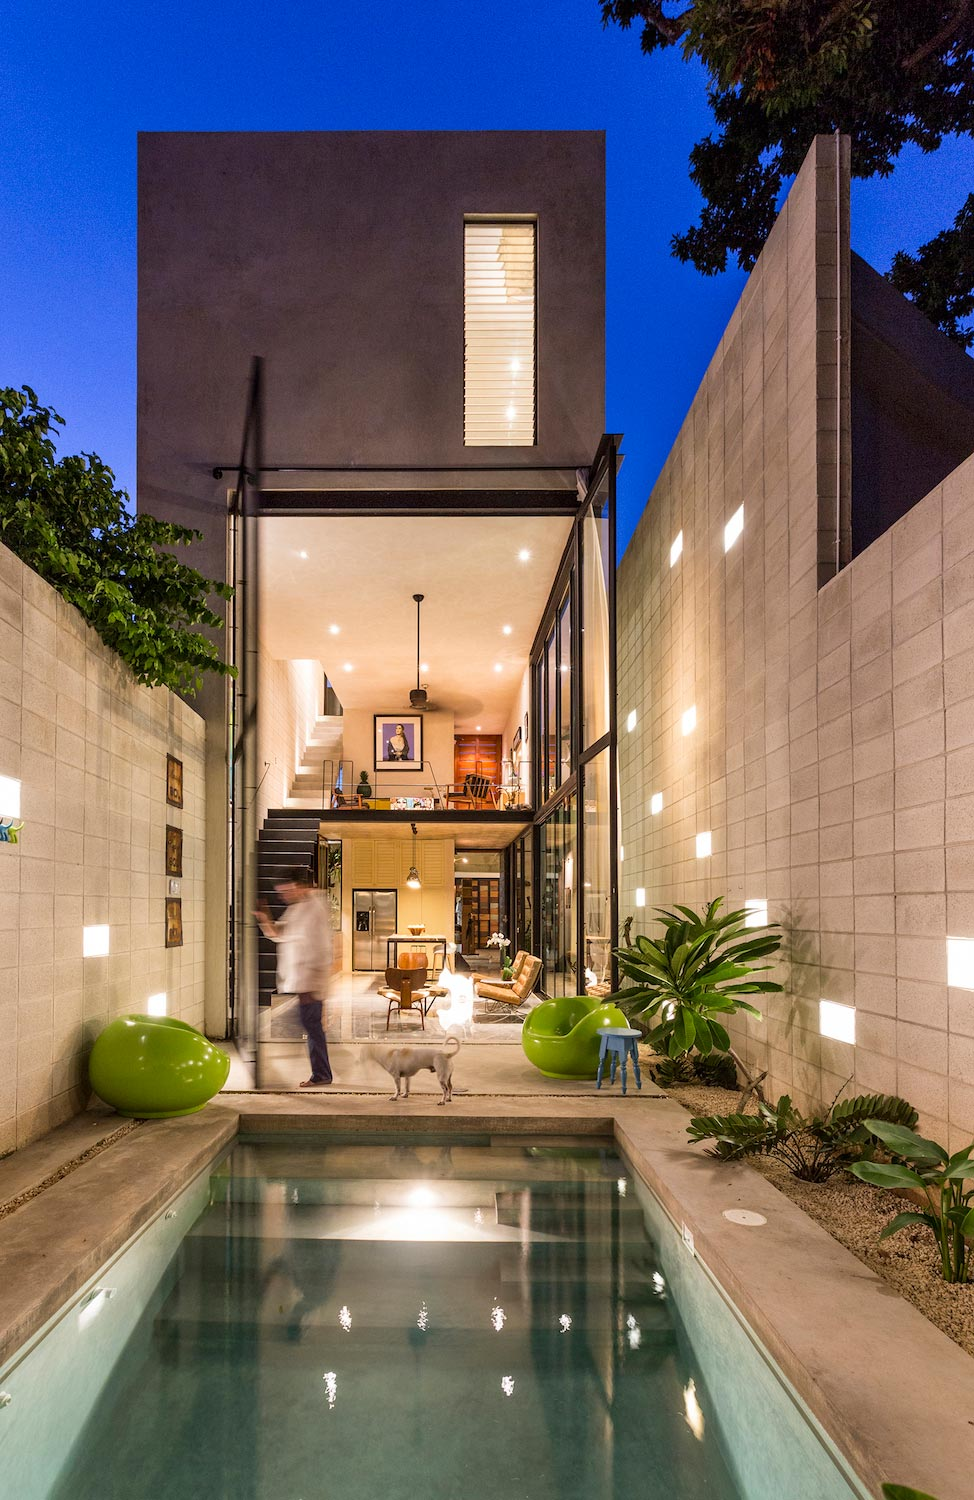 Taller Estilo Arquitectura design the Desnuda house made up by raw materials - CAANdesign | Architecture and home design blog